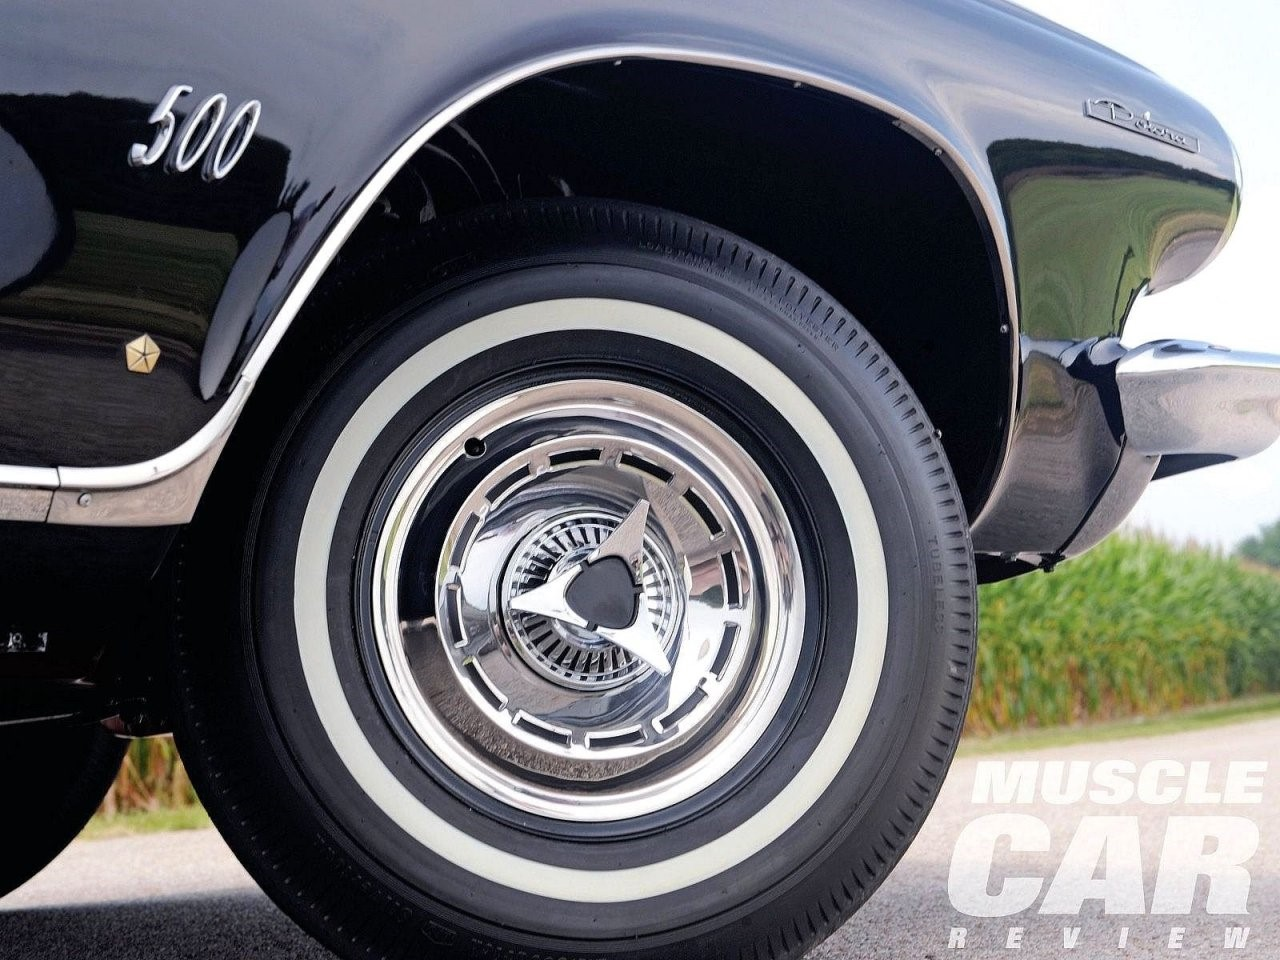 Remember the classic Dodge Polara knock-off wheels